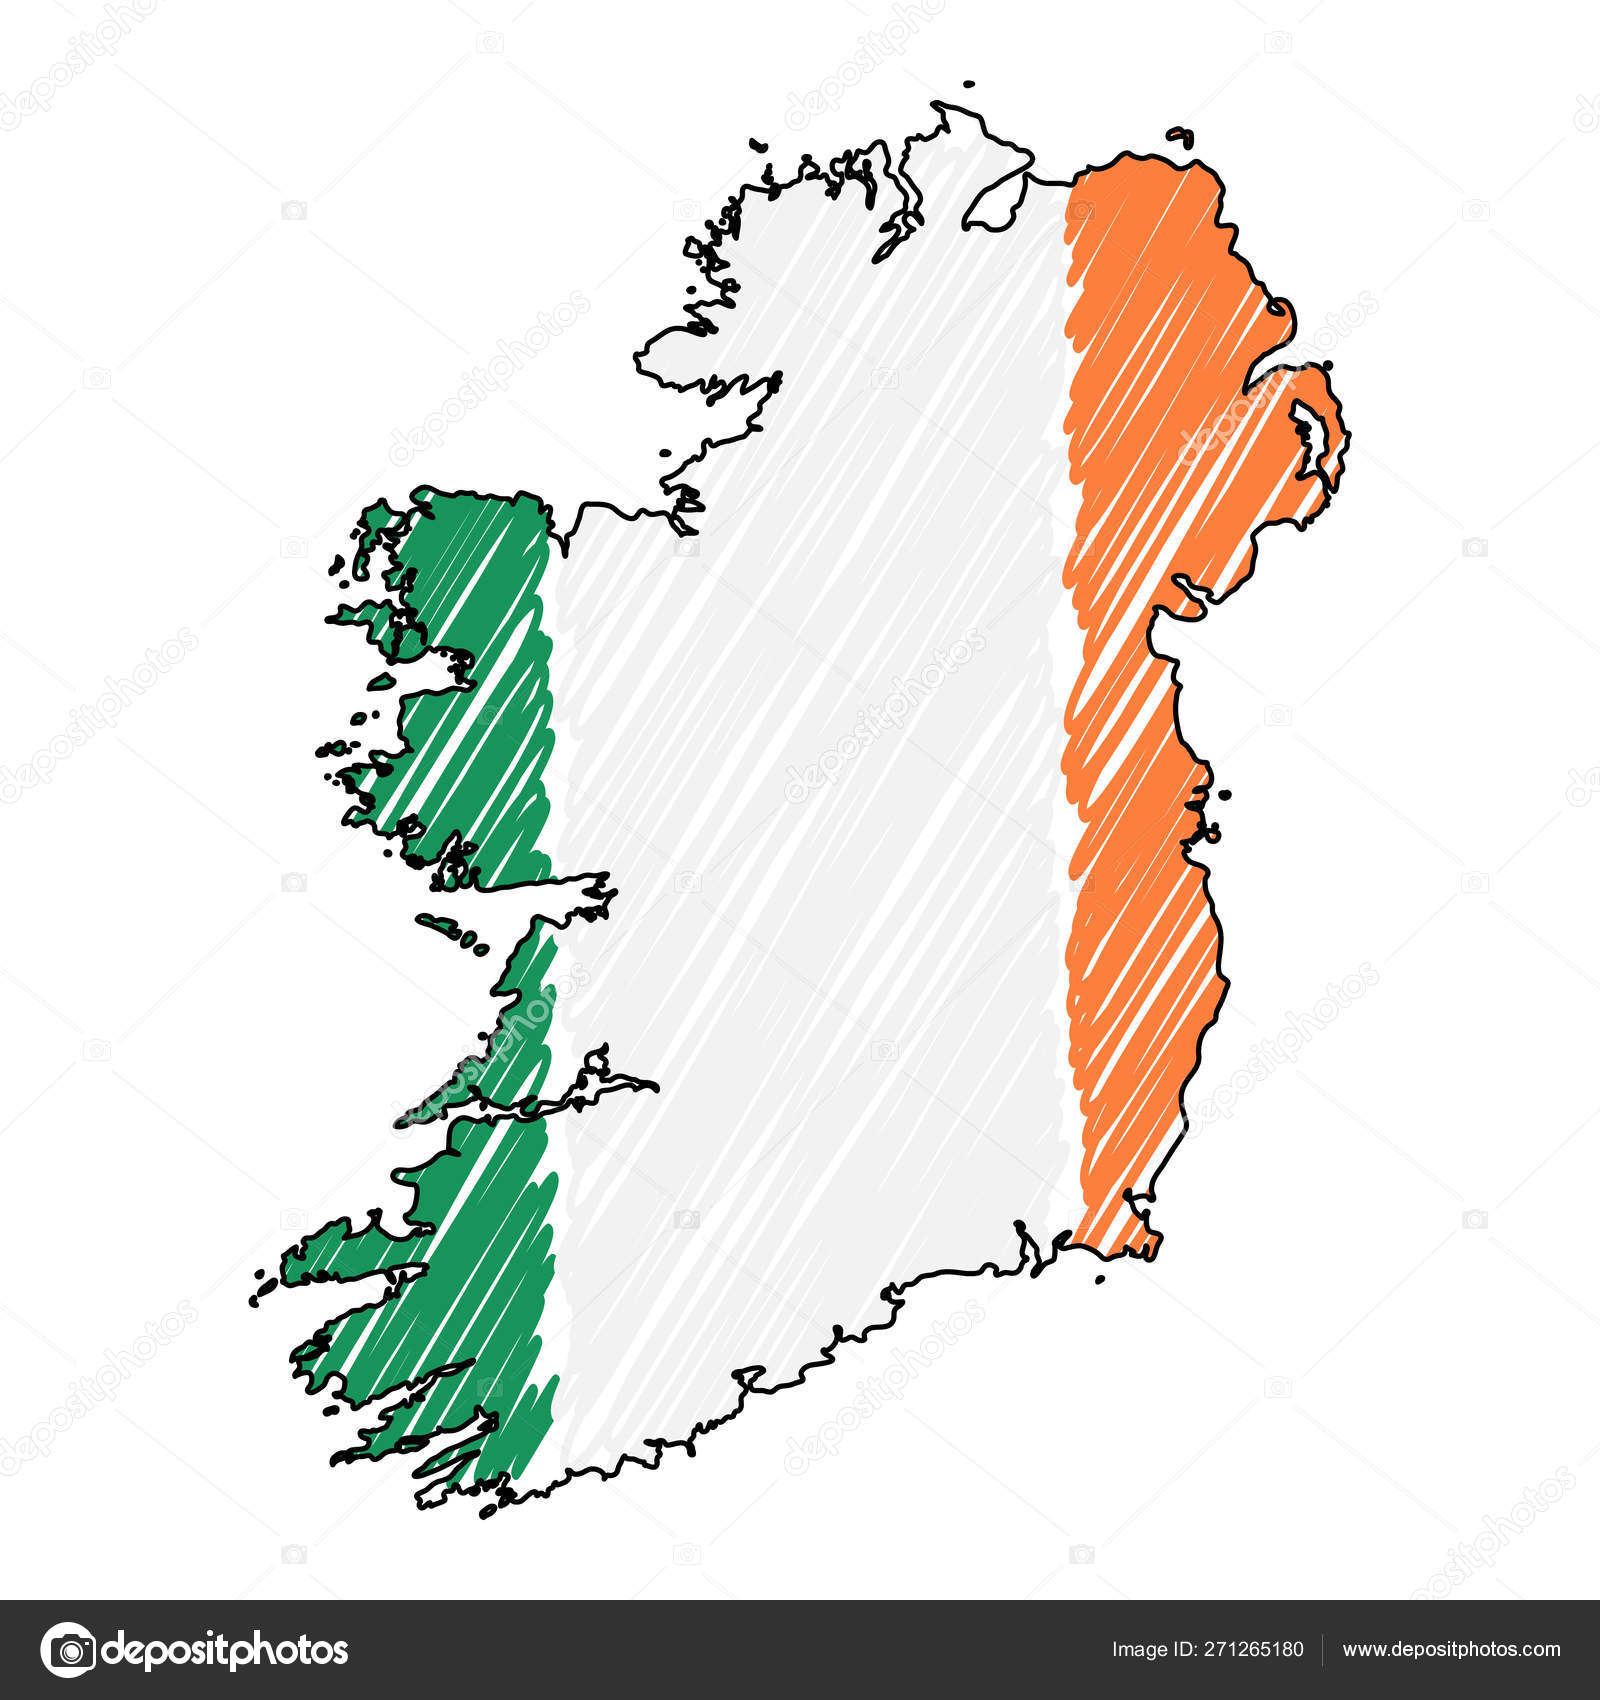 Sketch Map Of Ireland.Ireland Map Hand Drawn Sketch Vector Concept Illustration Flag